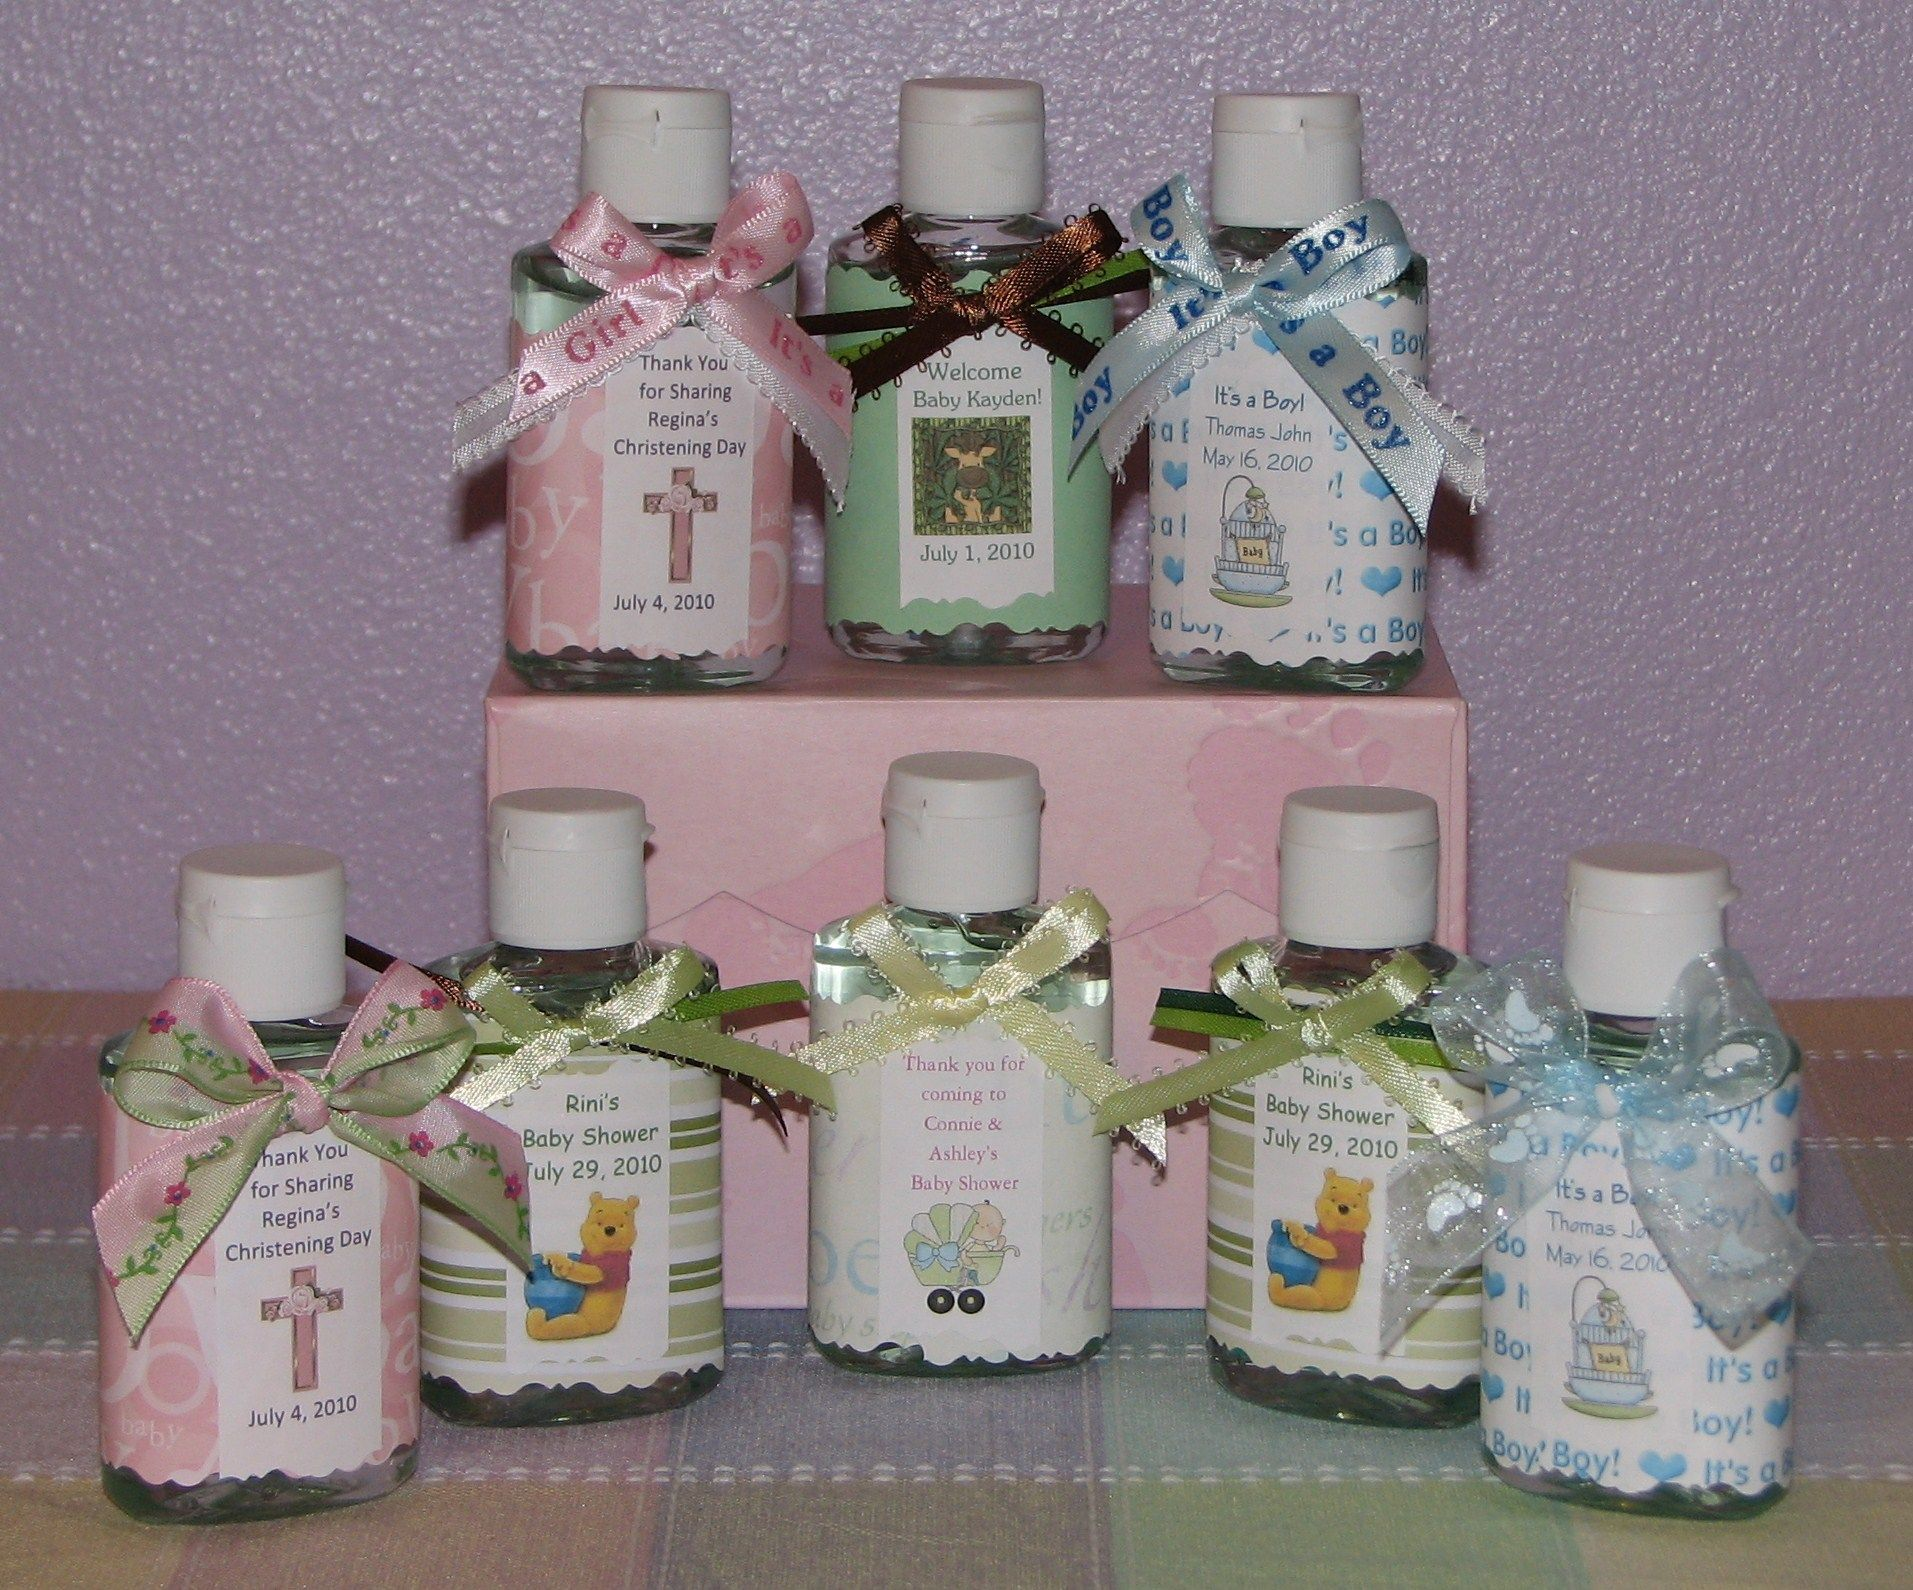 Baby Shower Favors Ideas To Make At Home ~ Baby shower favors ideas and tips for making the right choice